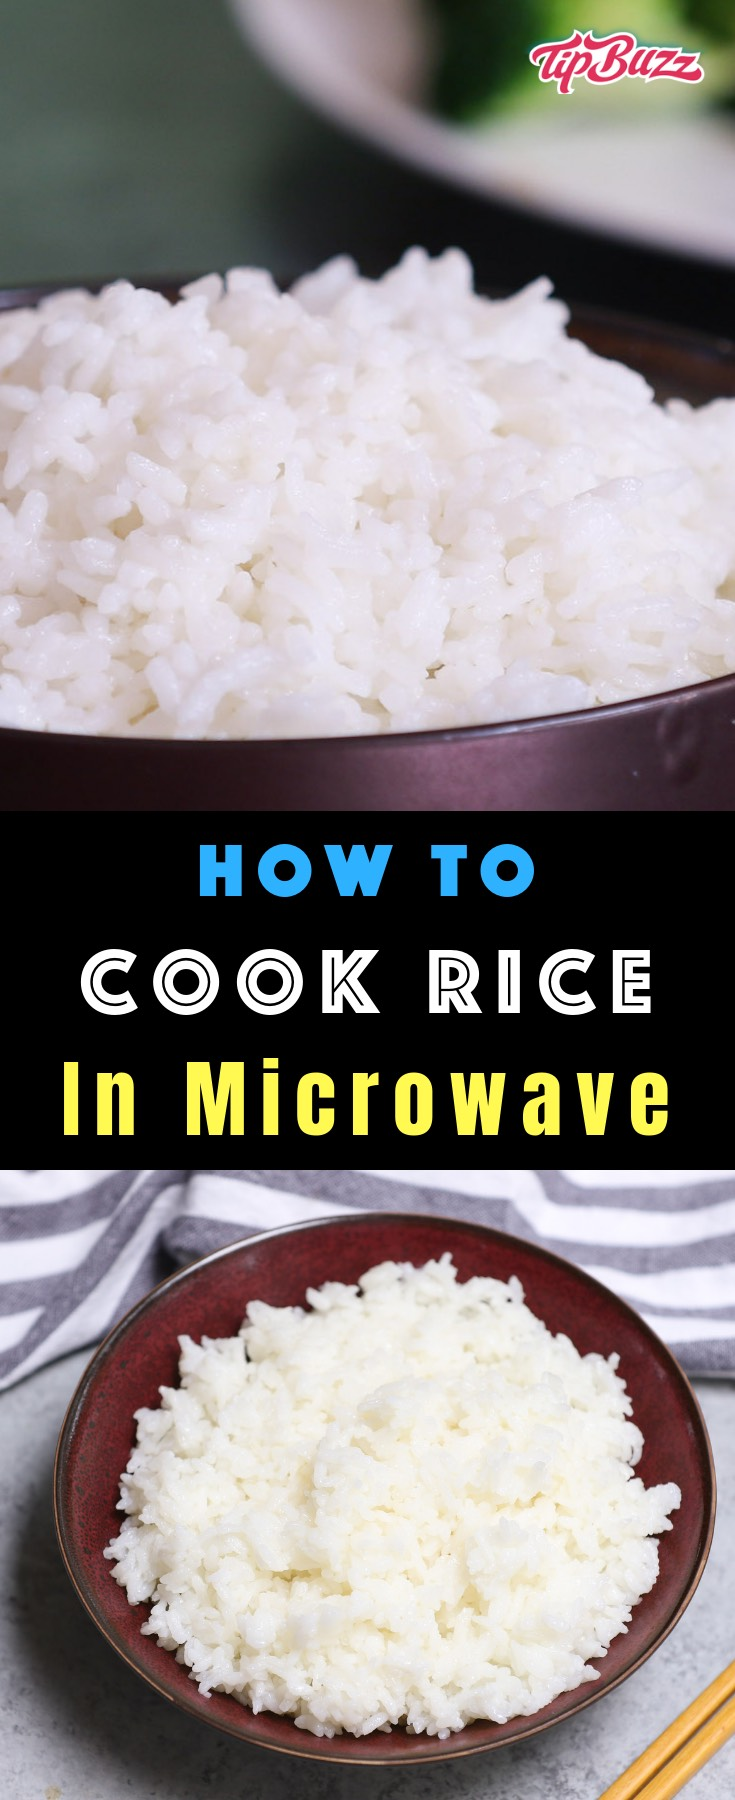 Learn How to Cook Rice in the Microwave – easier, faster and perfectly cooked each time. Rice cooked in the microwave is fluffy and tender, tasting the same, if not better than a rice cooker or stovetop.